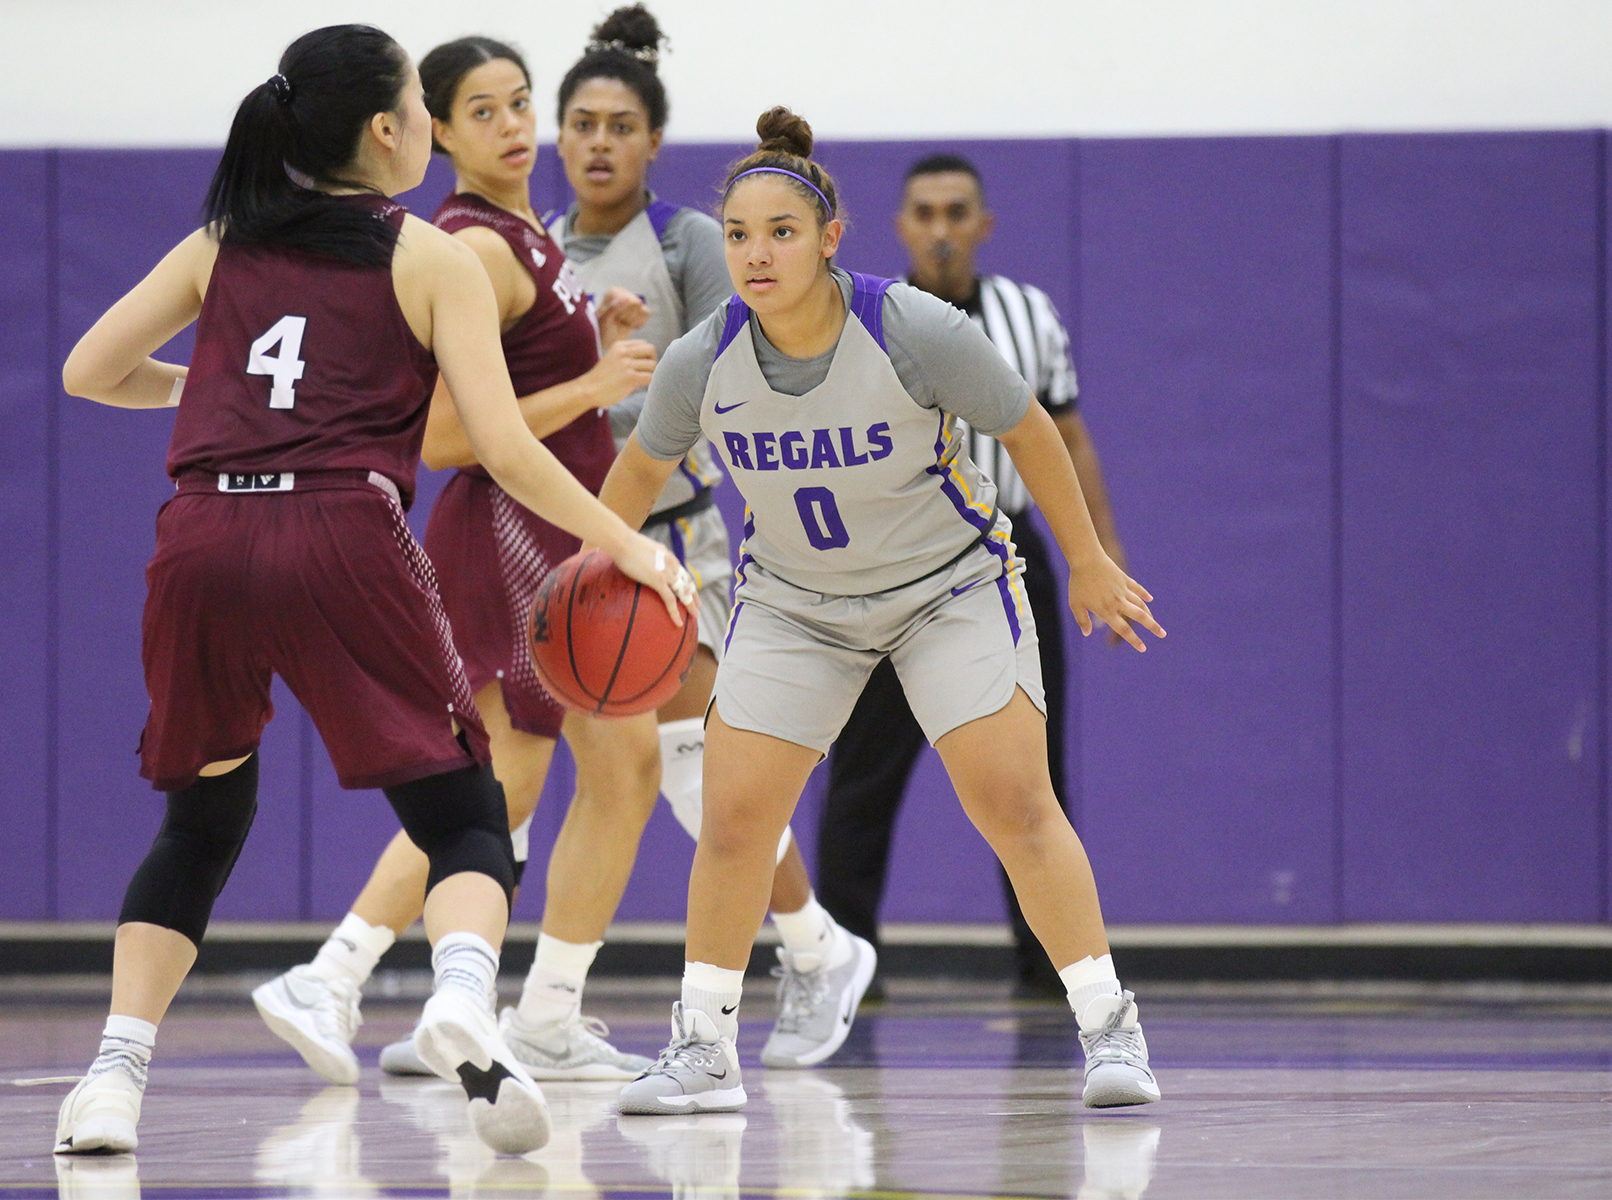 Regals Fall to No. 8 George Fox